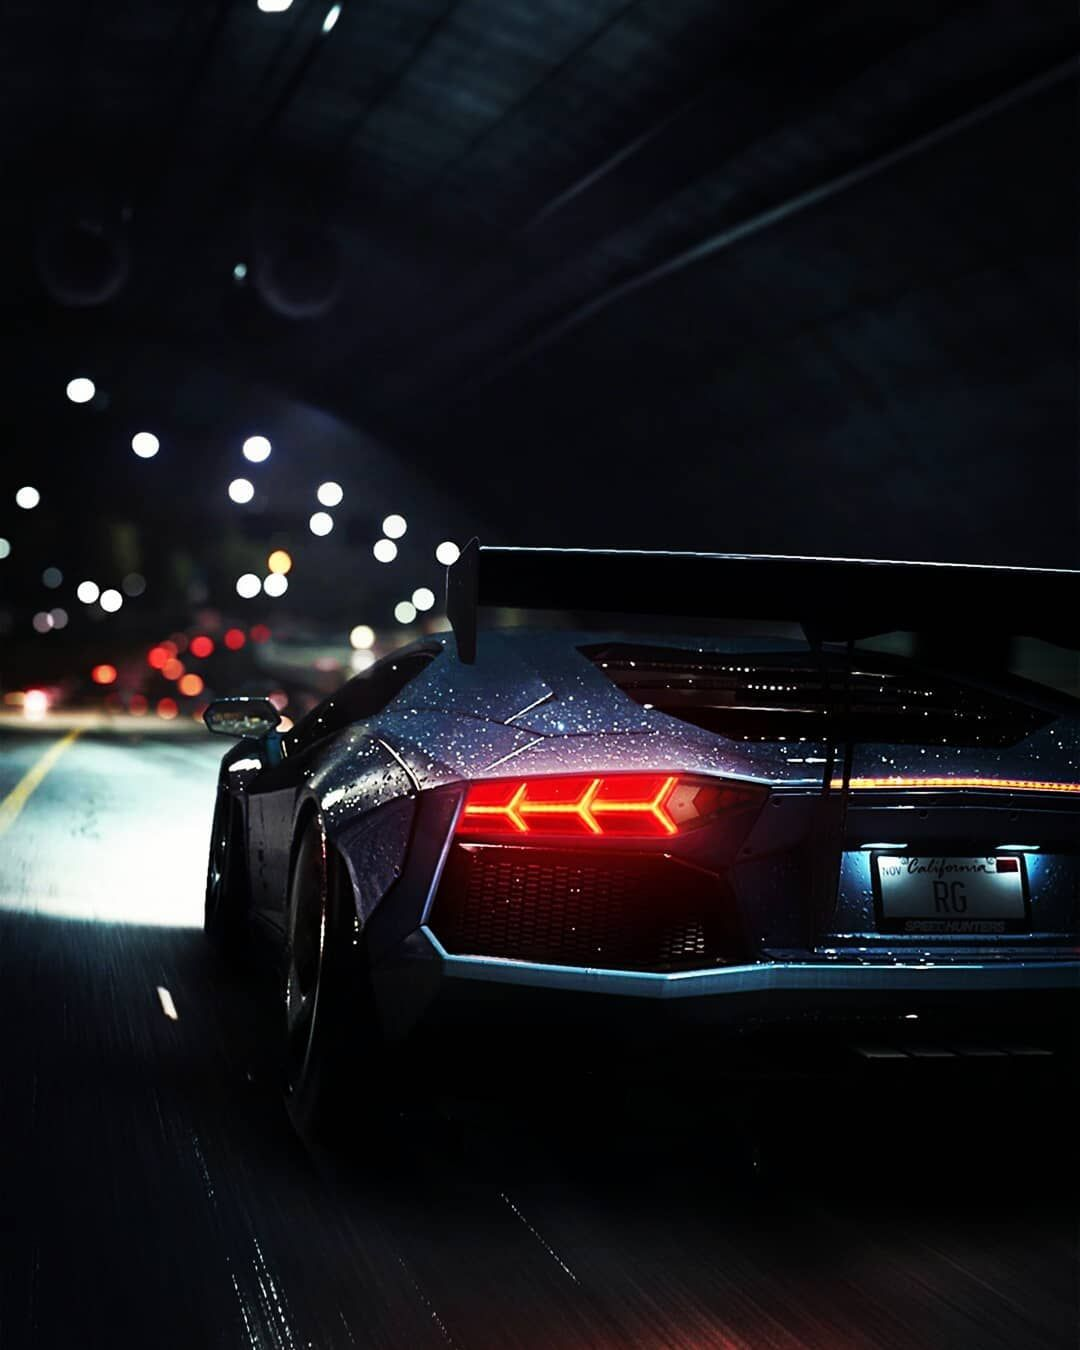 Background Wallpaper Picture Photo Photography Image Beautiful Car Sportcar Profile Lamborghini City In 2020 Image Photography Instagram Wallpaper Pictures